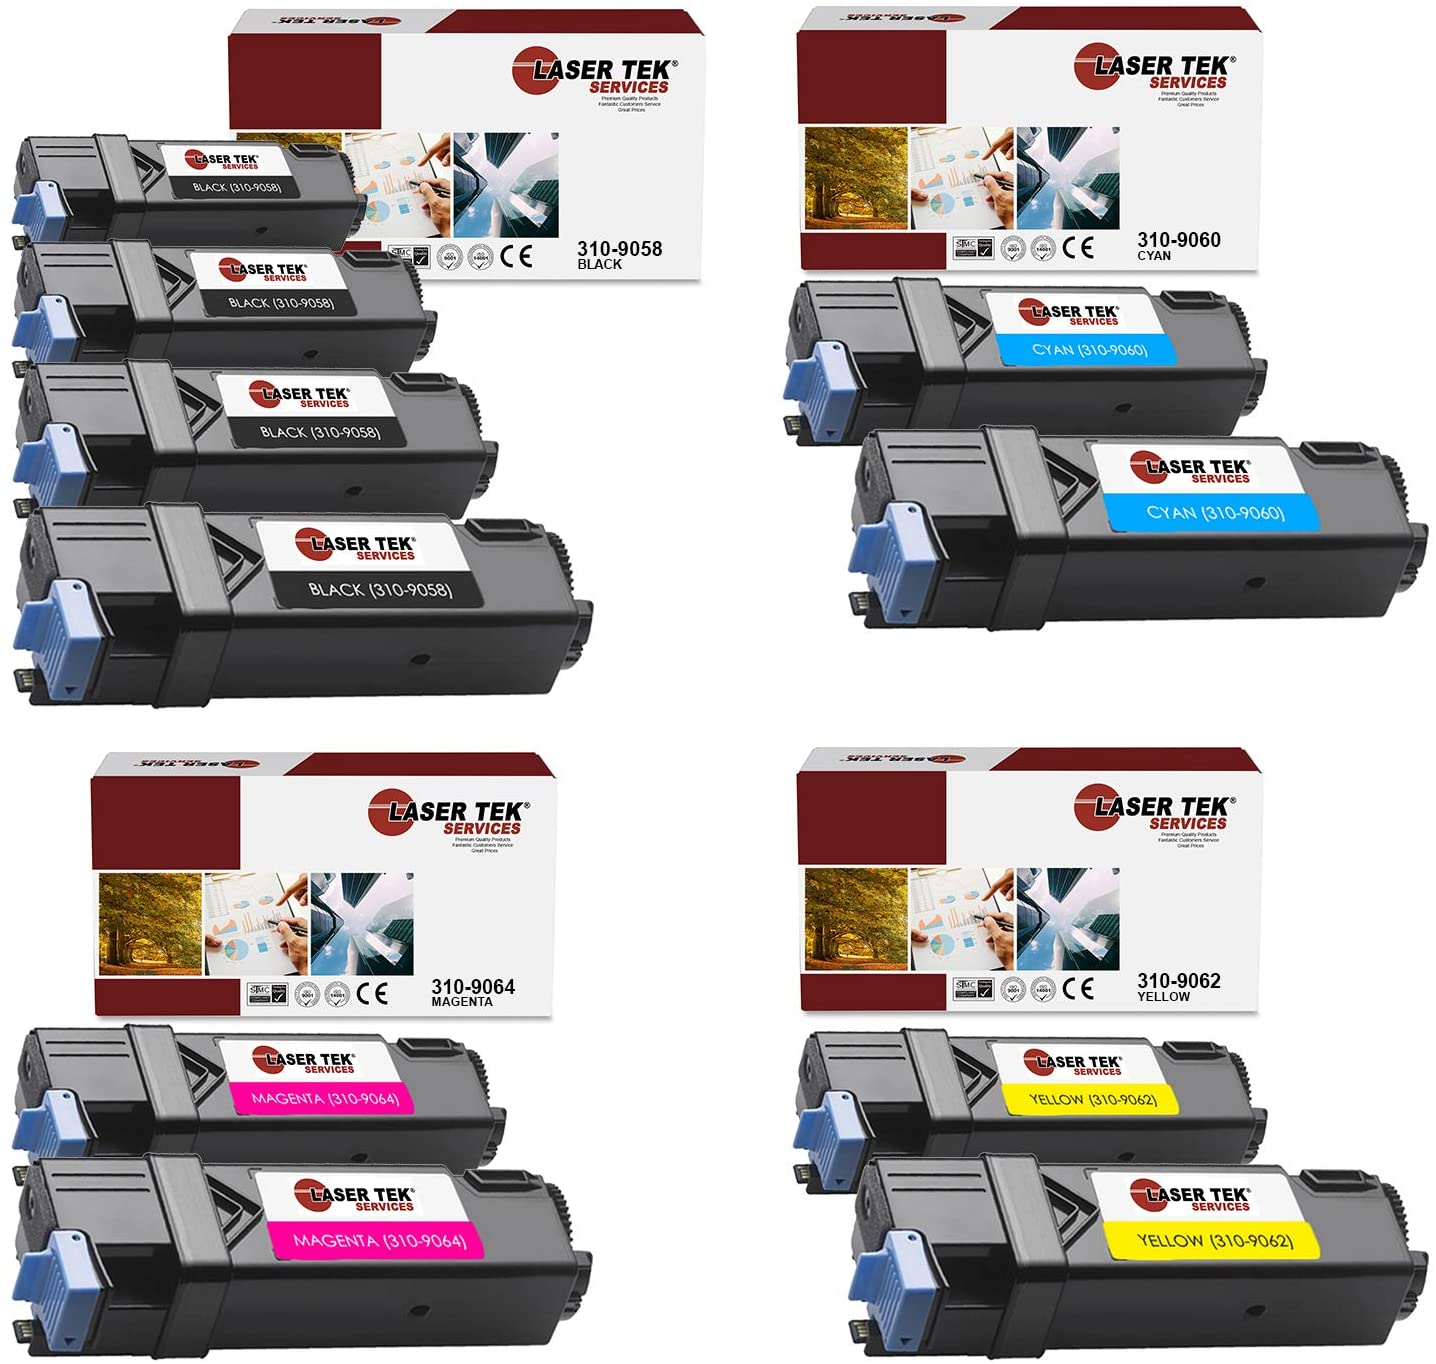 Laser Tek Services Compatible 310-9058 310-9060 310-9064 310-9062 Toner Cartridge Replacement for Dell 1320 1320C 1320CN Printers (Black, Cyan, Magenta, Yellow,10 Pack)